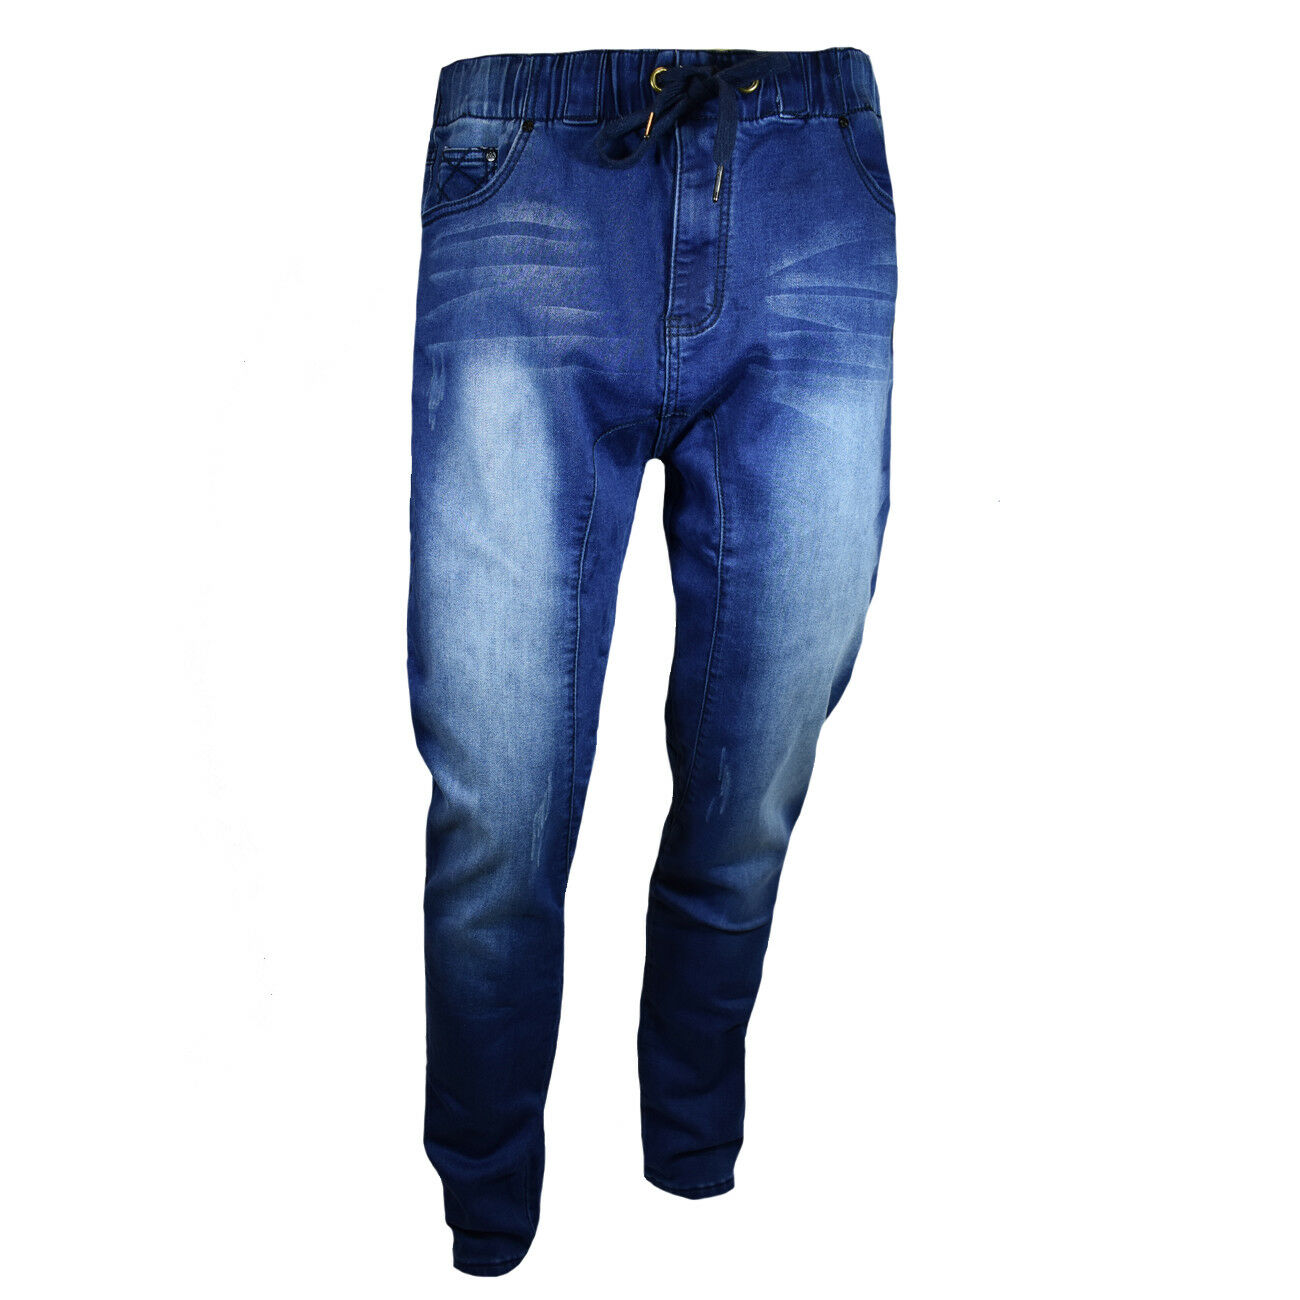 Mens Joggers Pants Denim Stretch Casual Fit Relaxed A  Jeans NEW C